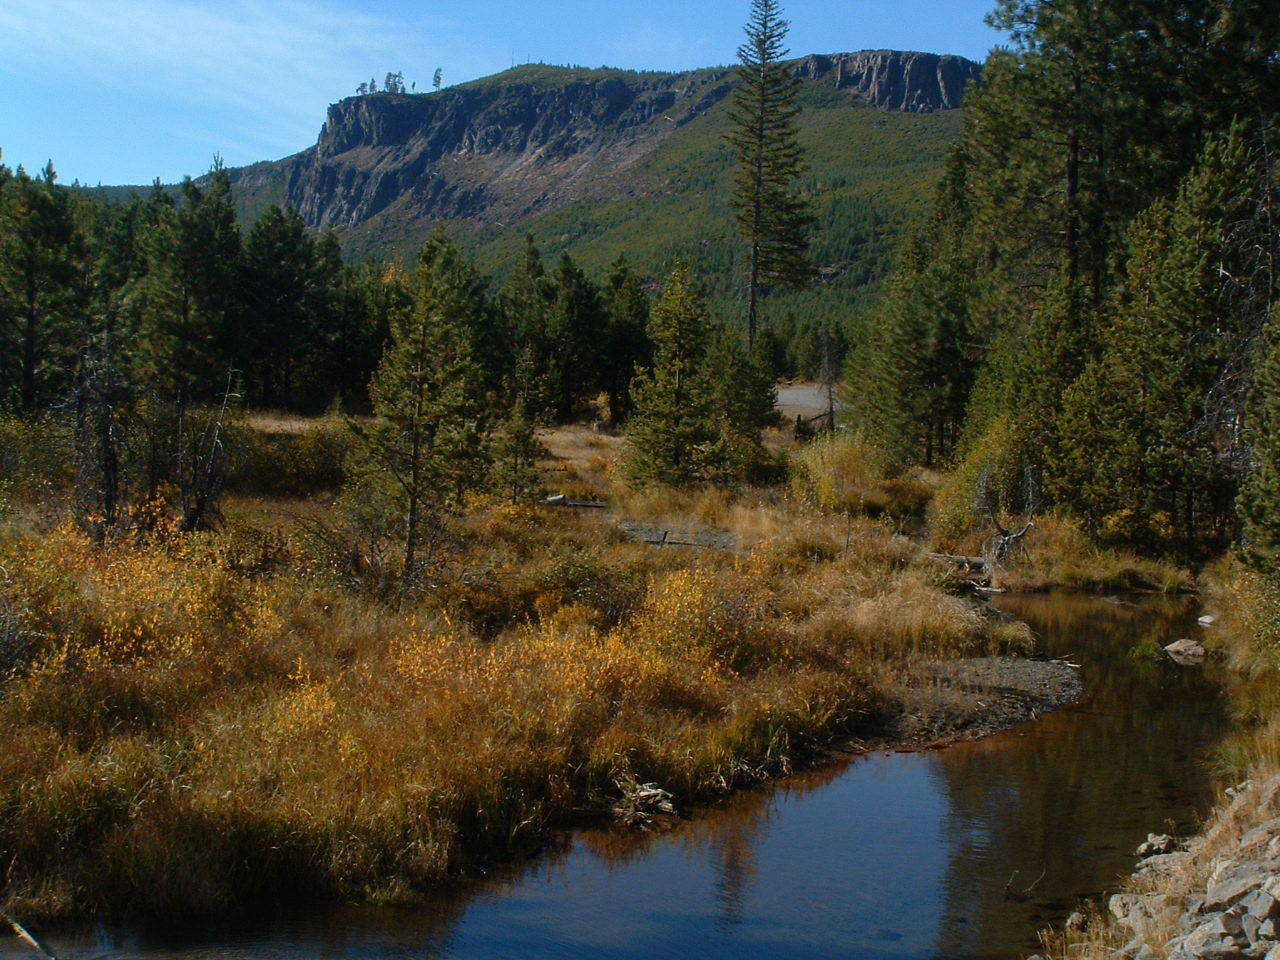 Tumalo creek in late summer